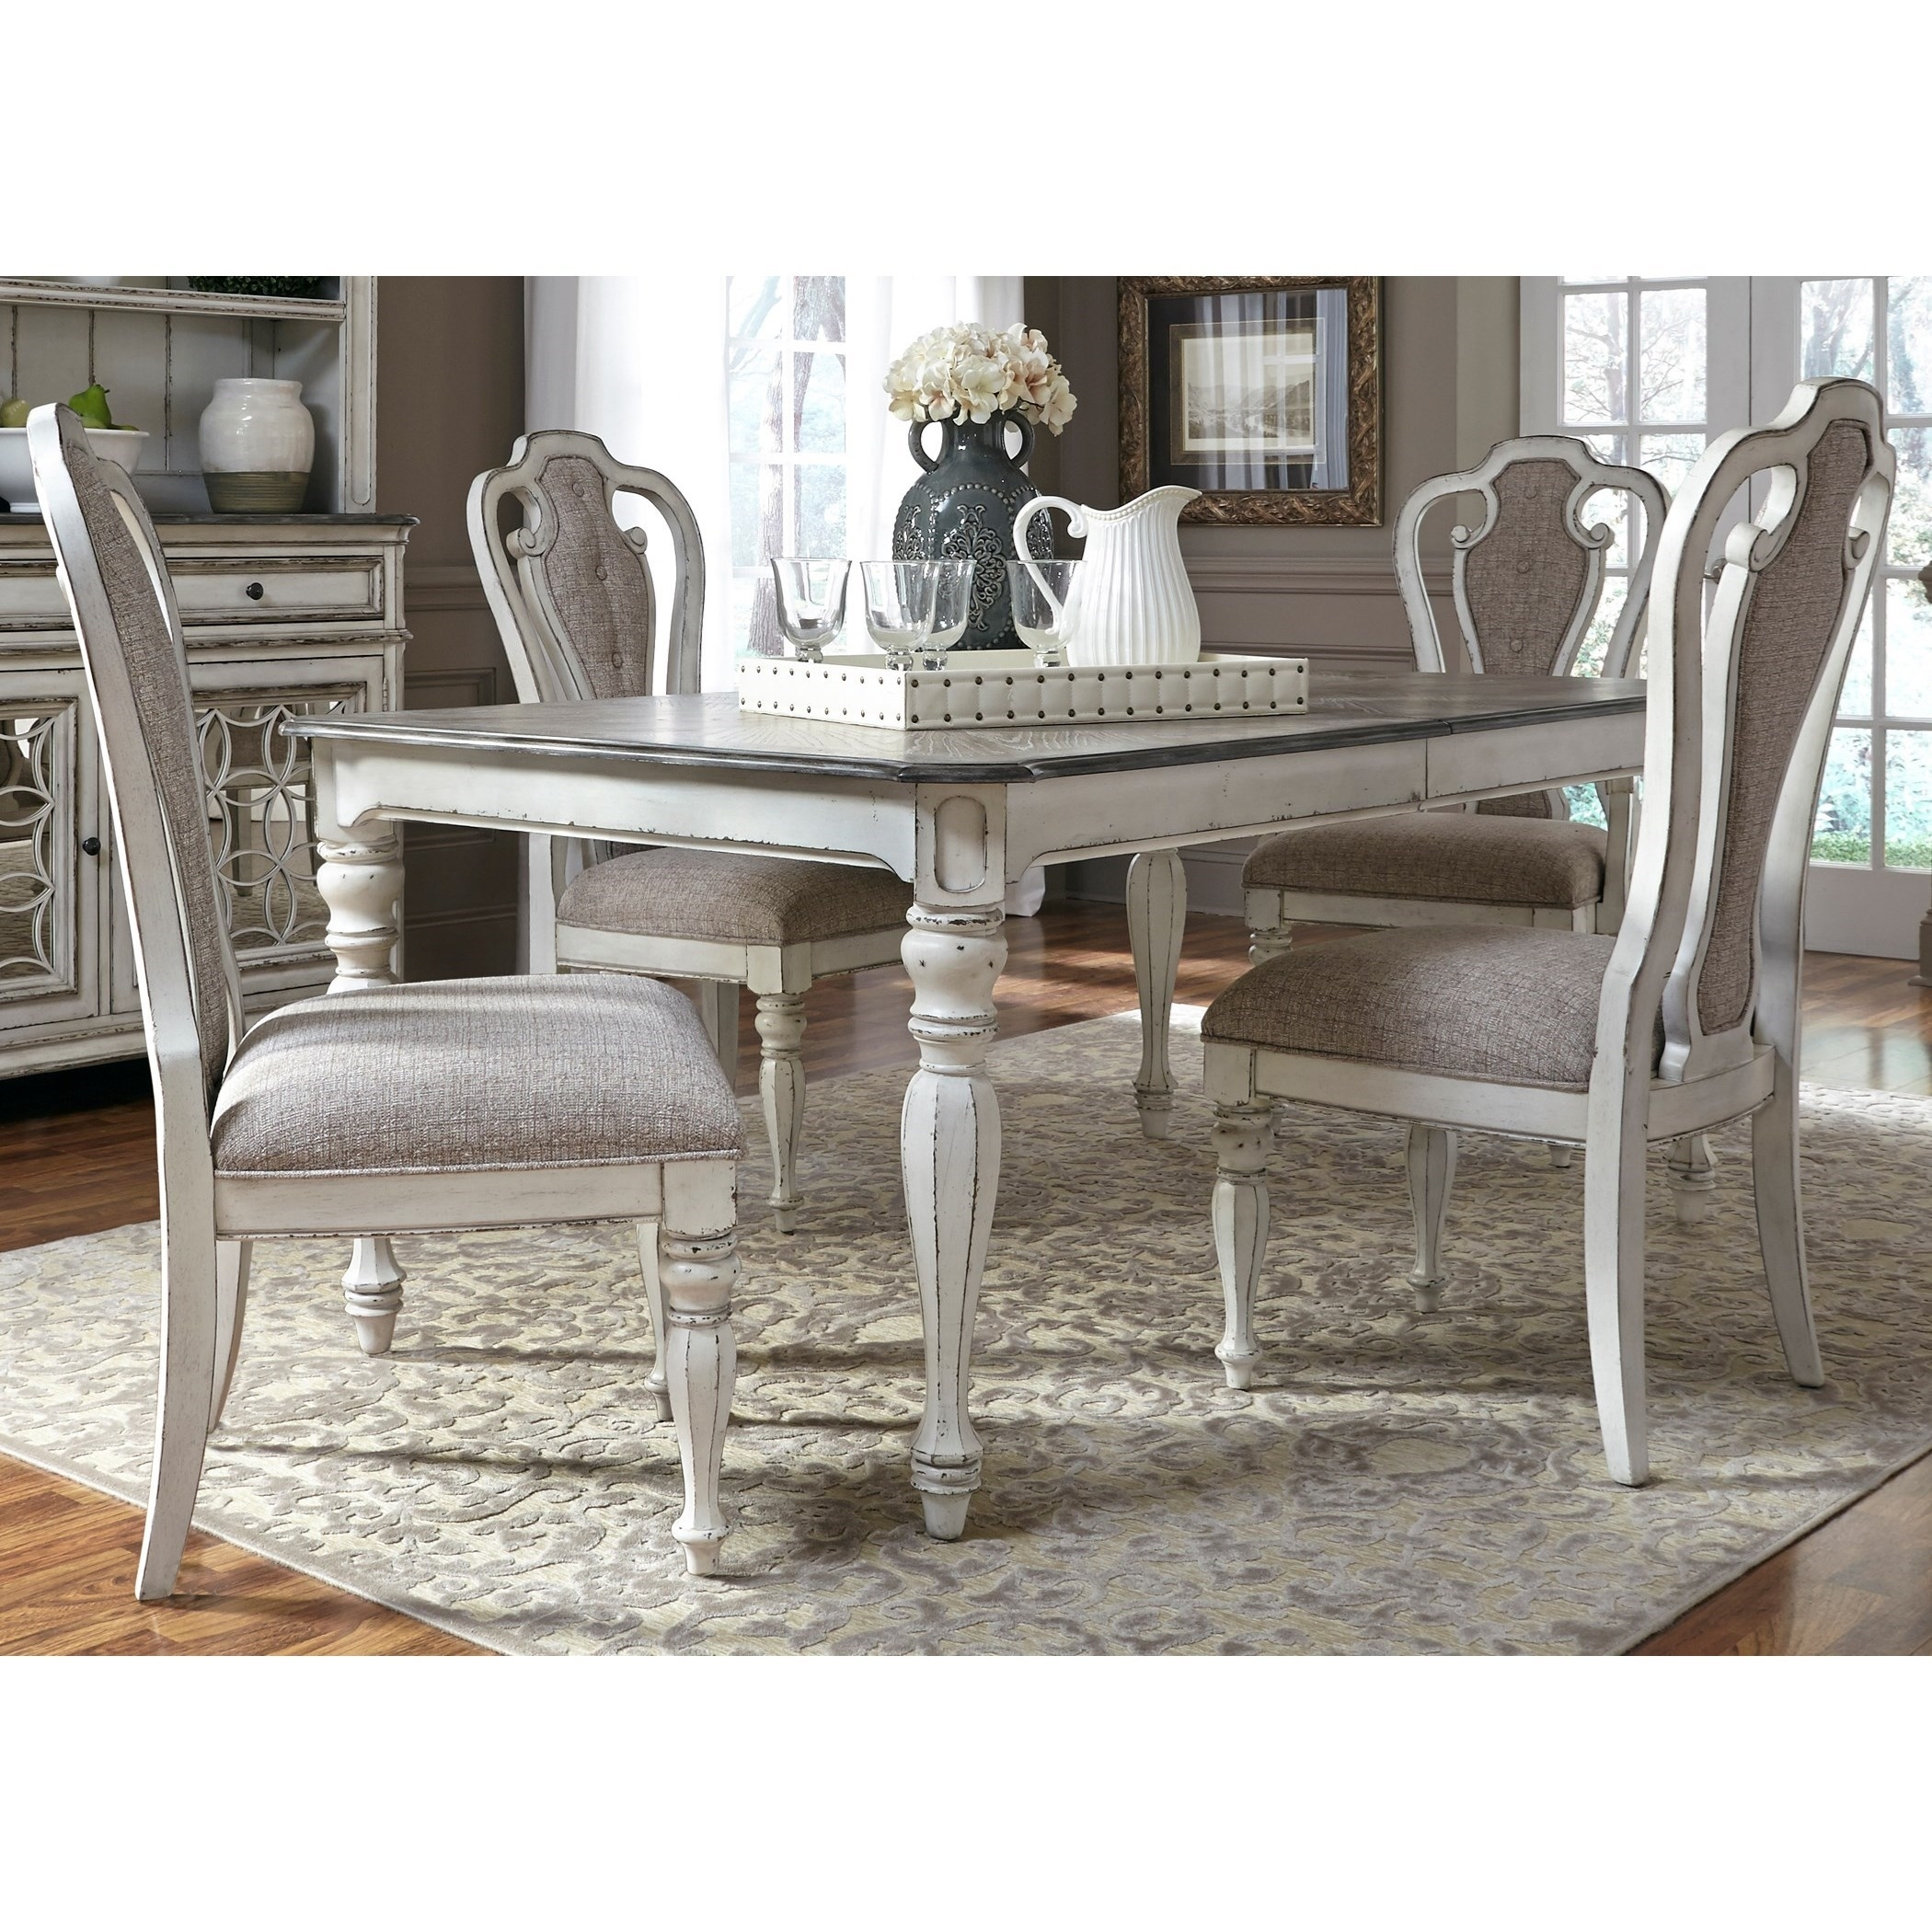 Liberty Furniture Magnolia Manor Dining 5 Piece Rectangular Table Pertaining To Newest Jaxon 5 Piece Extension Counter Sets With Wood Stools (Image 13 of 20)